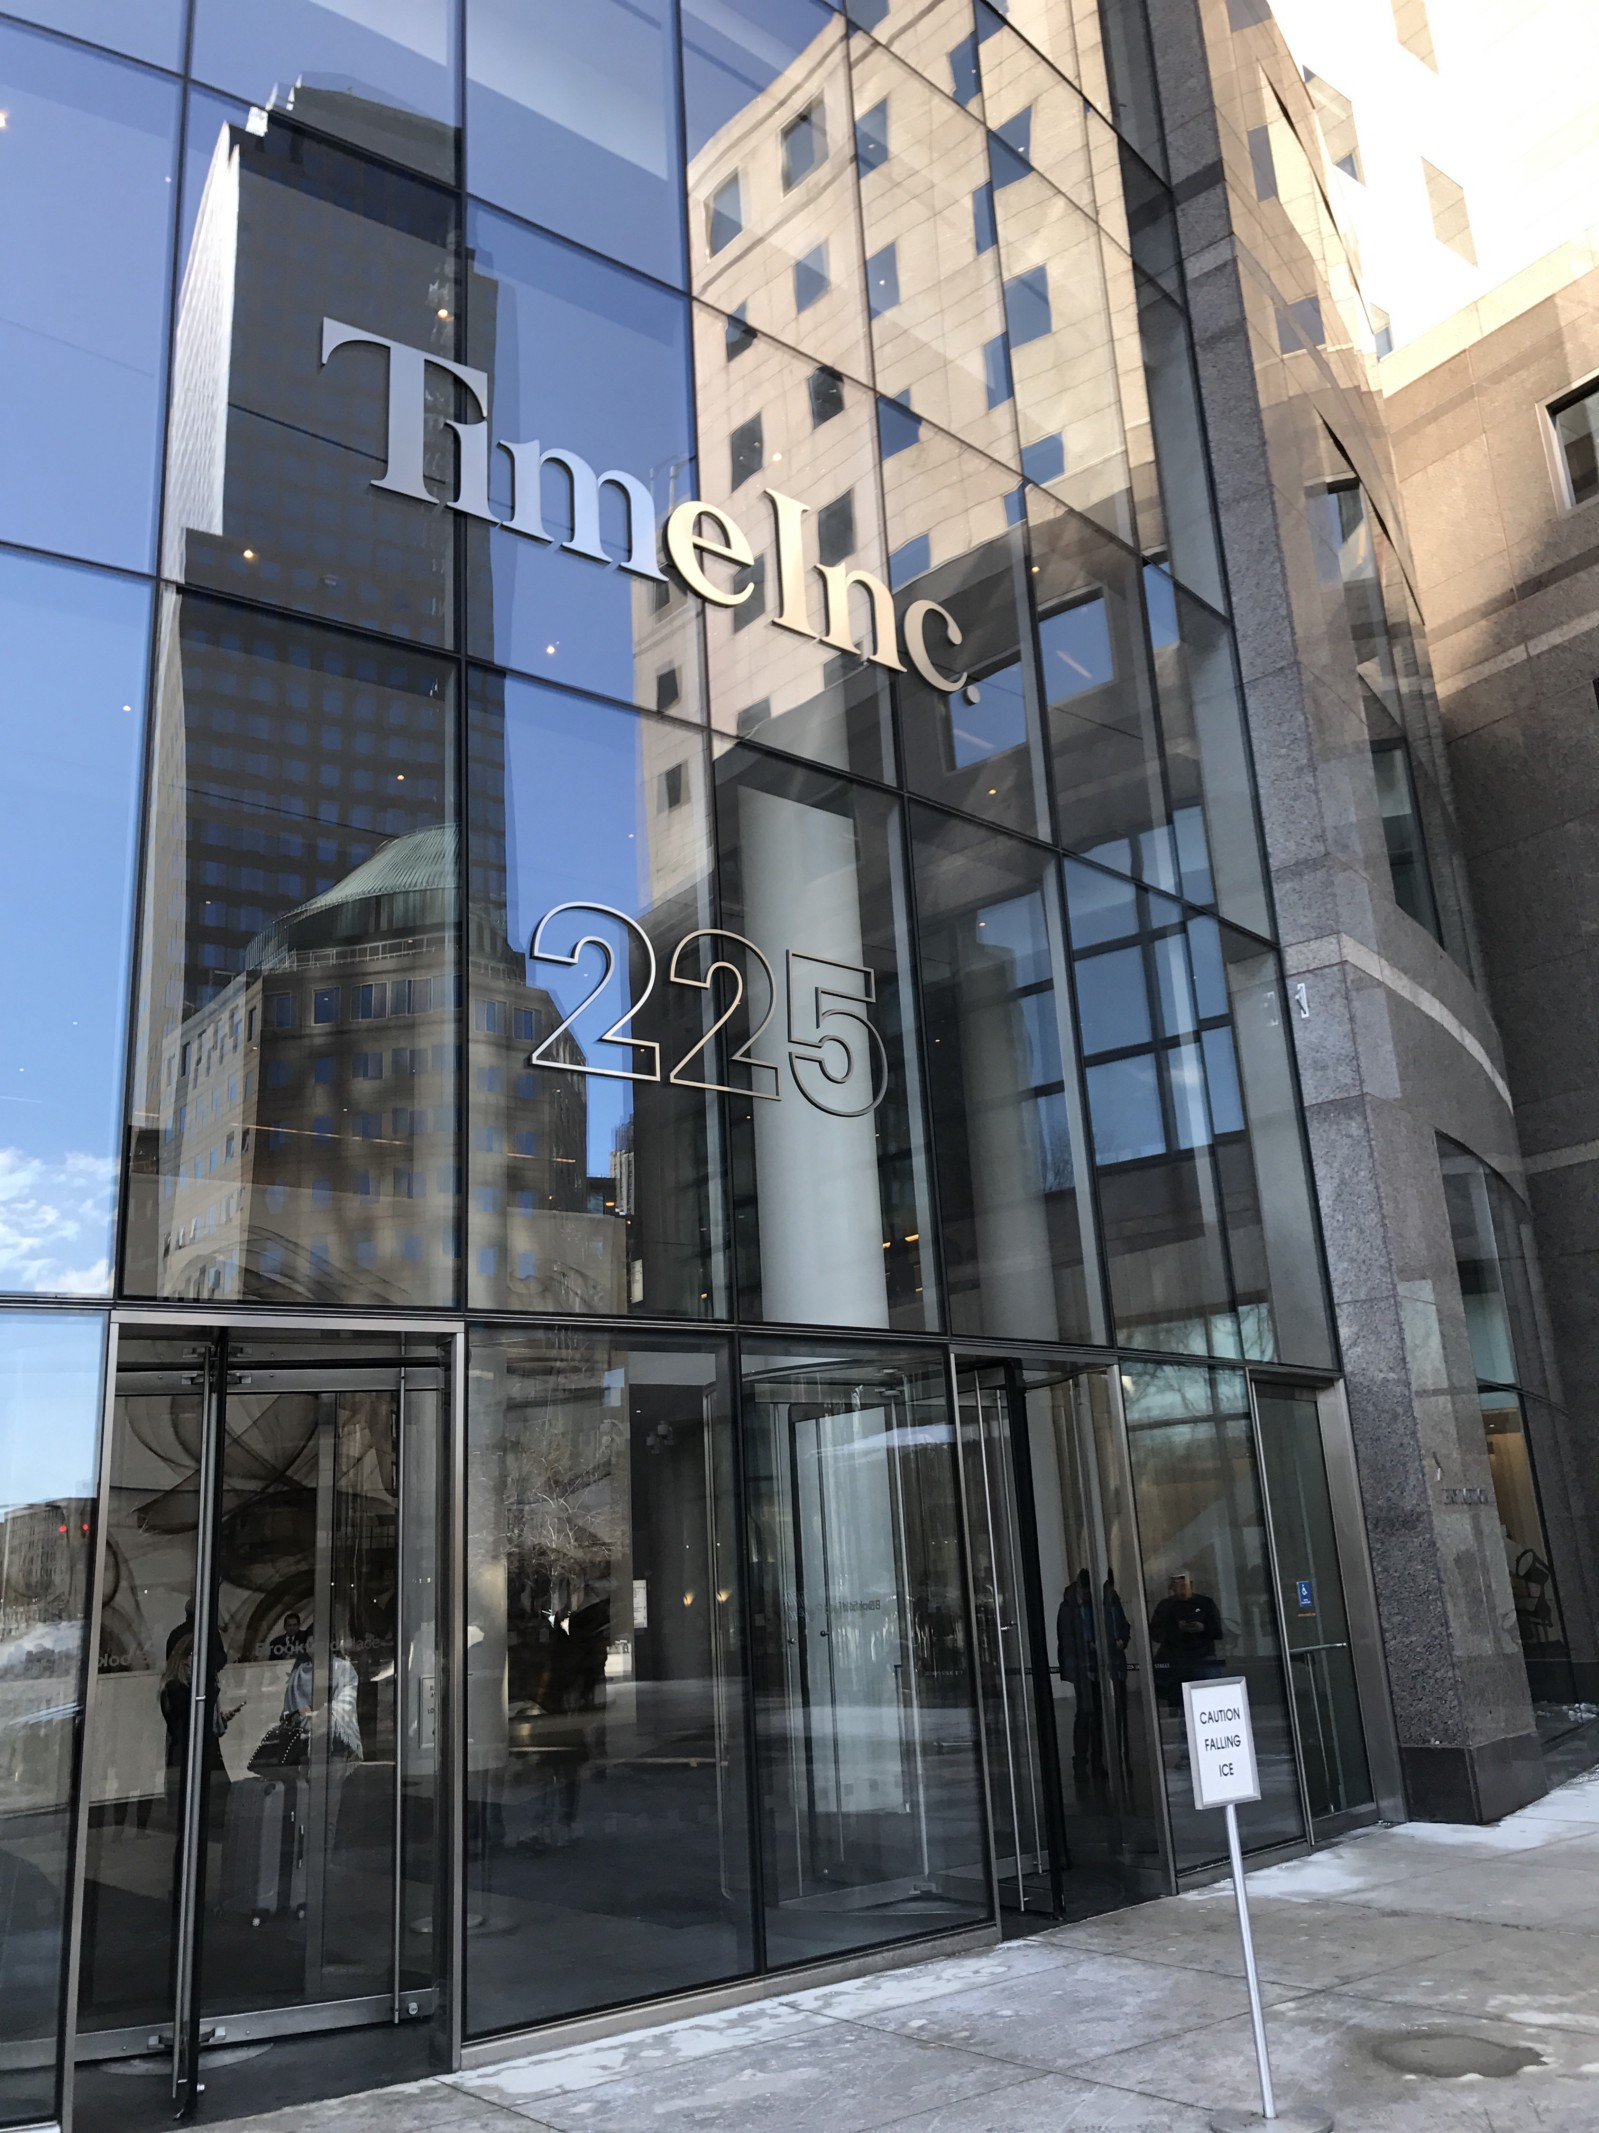 Outdoor mirrored edifice of Time, Inc. HQ.